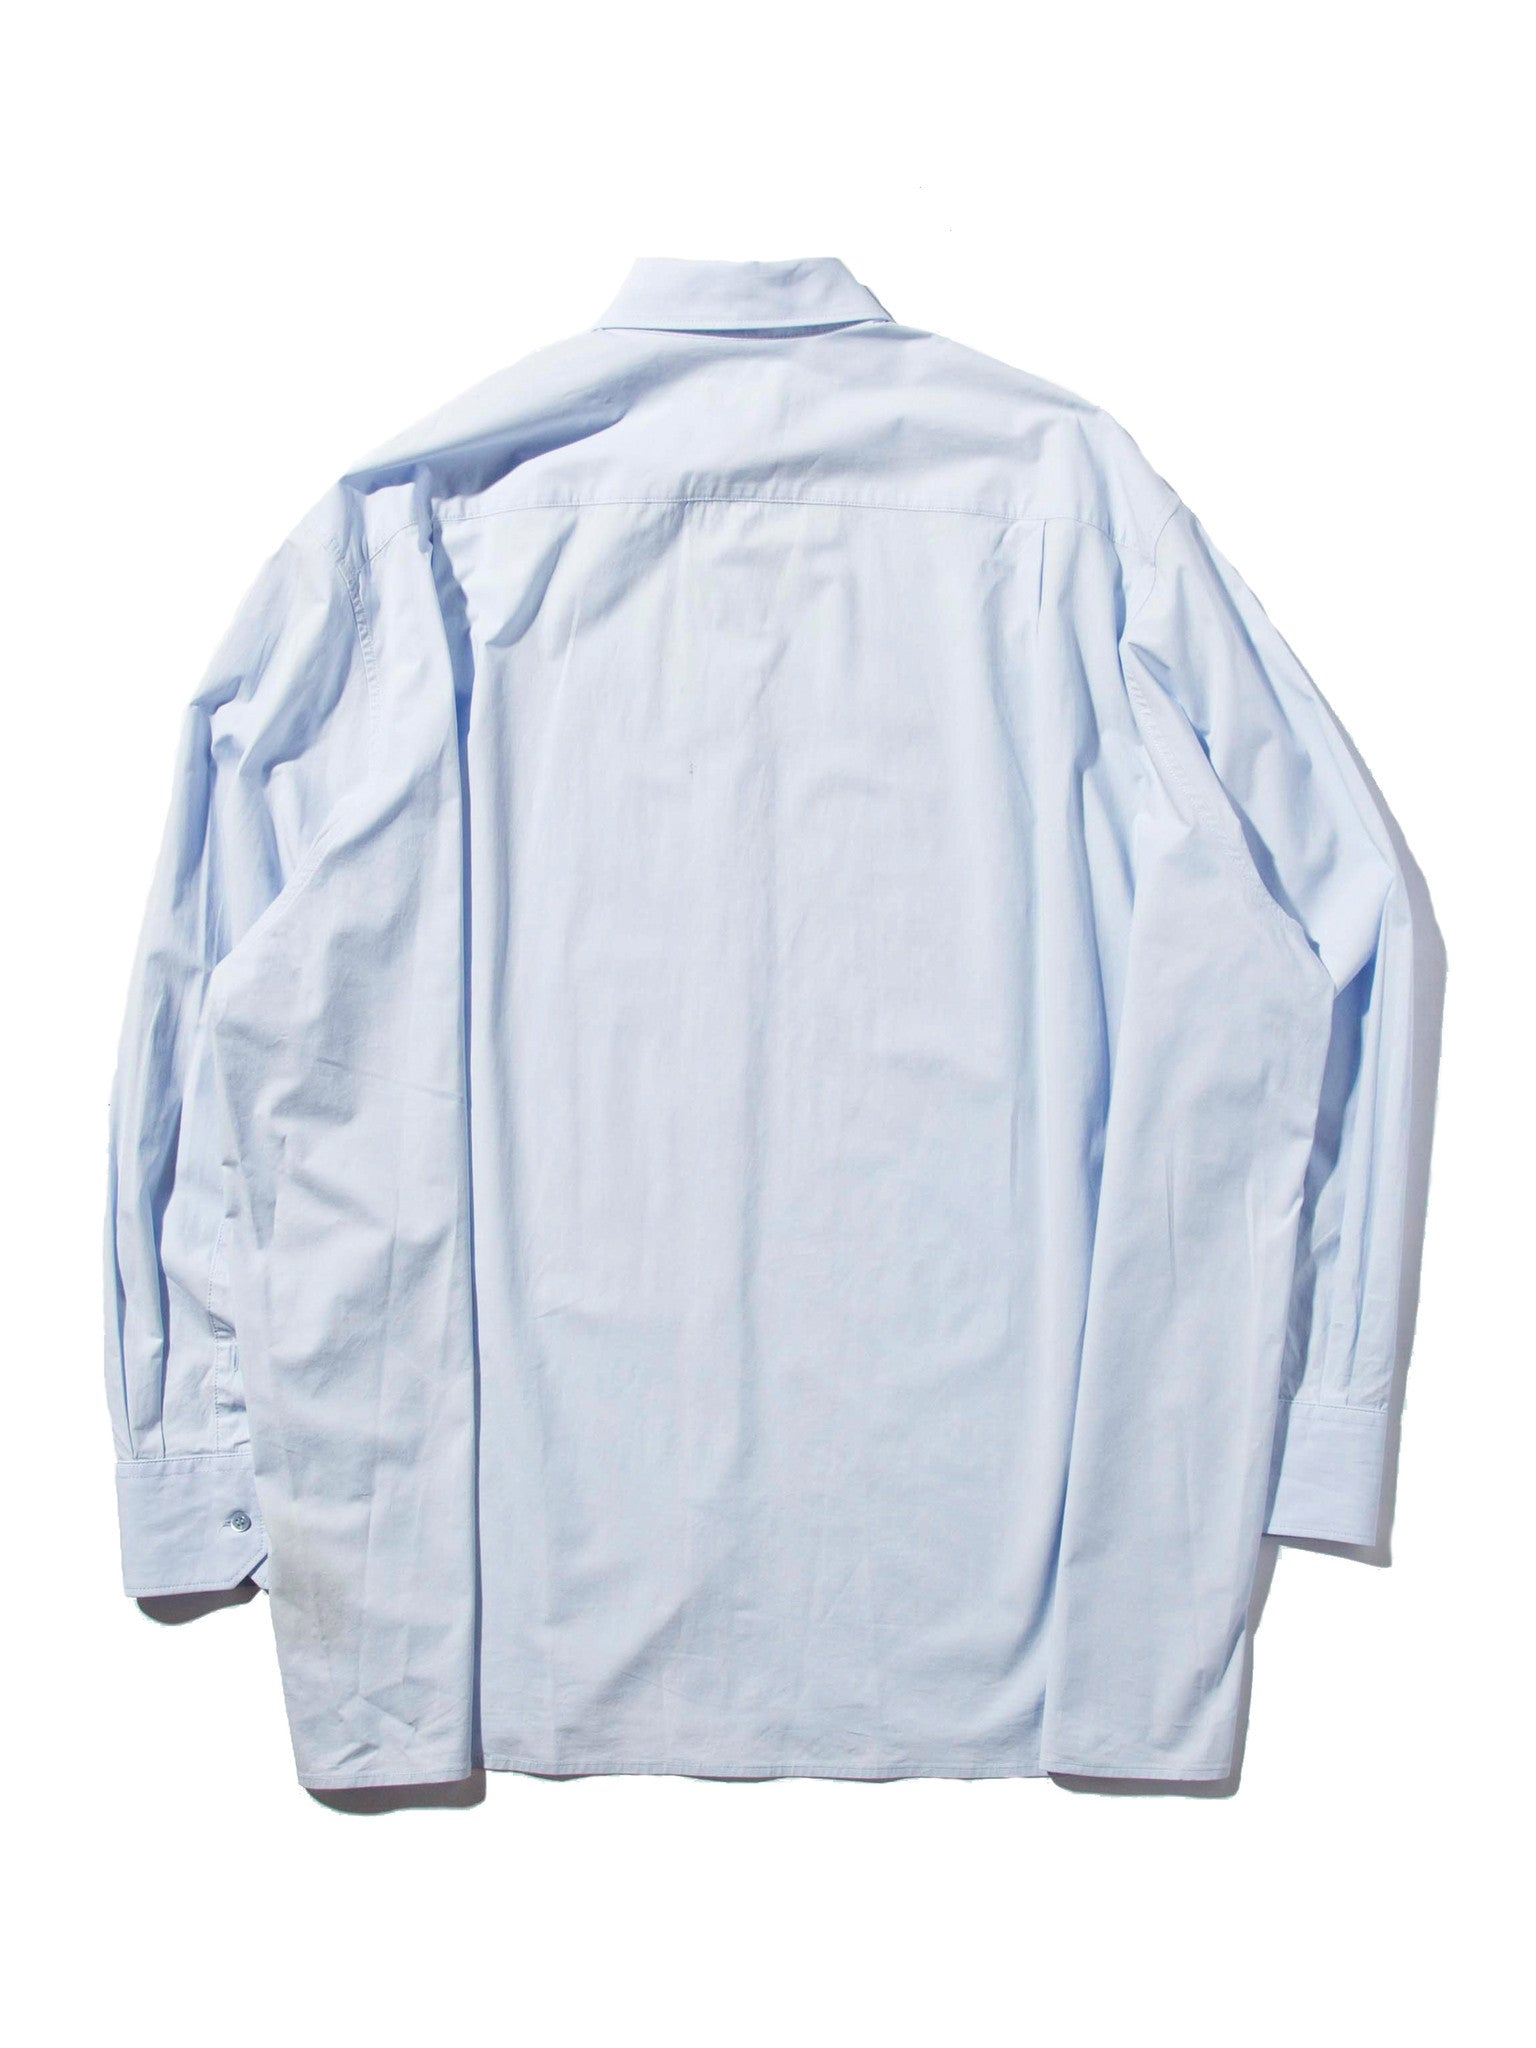 Lt. Blue Oversized Shirt 10